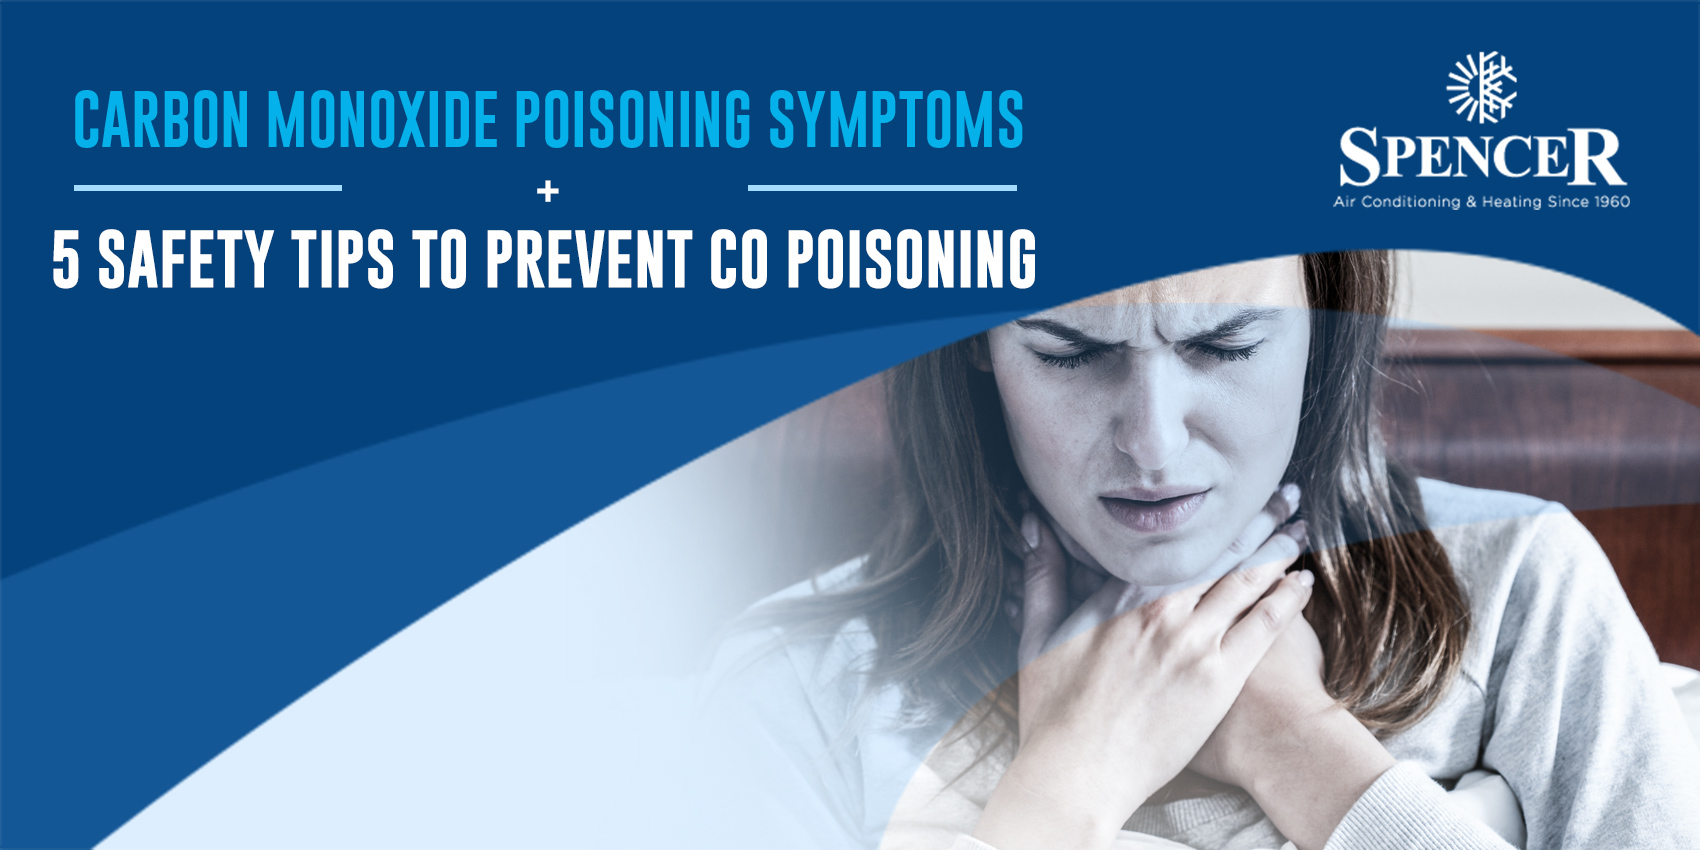 Carbon Monoxide Poisoning Symptoms + 5 Safety Tips to Prevent CO Poisoning